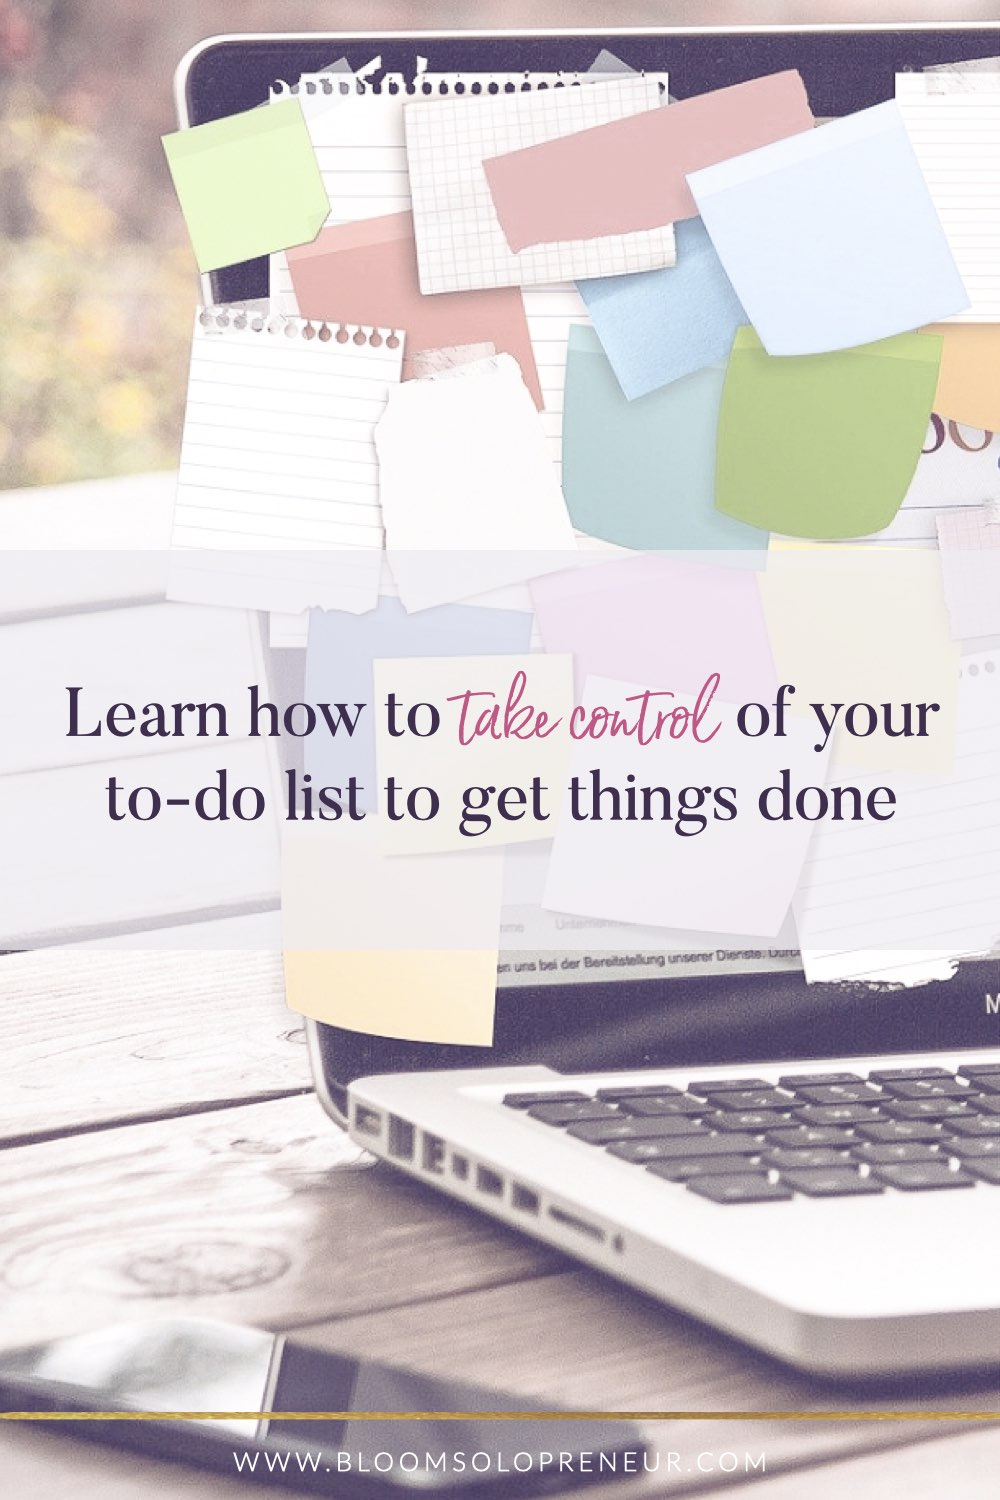 When you have so much to do and don't know where to start, you need to learn how to master your to-do list to help yourself get things done and back on track. Find out how to improve your time management to reach your goals faster and improve your productivity. Managing your to do list in the right frame of mind each day to get things done, keep you focussed to be productive and efficient. Improve your time management and watch your productivity and efficiency soar. #bloomsolopreneur